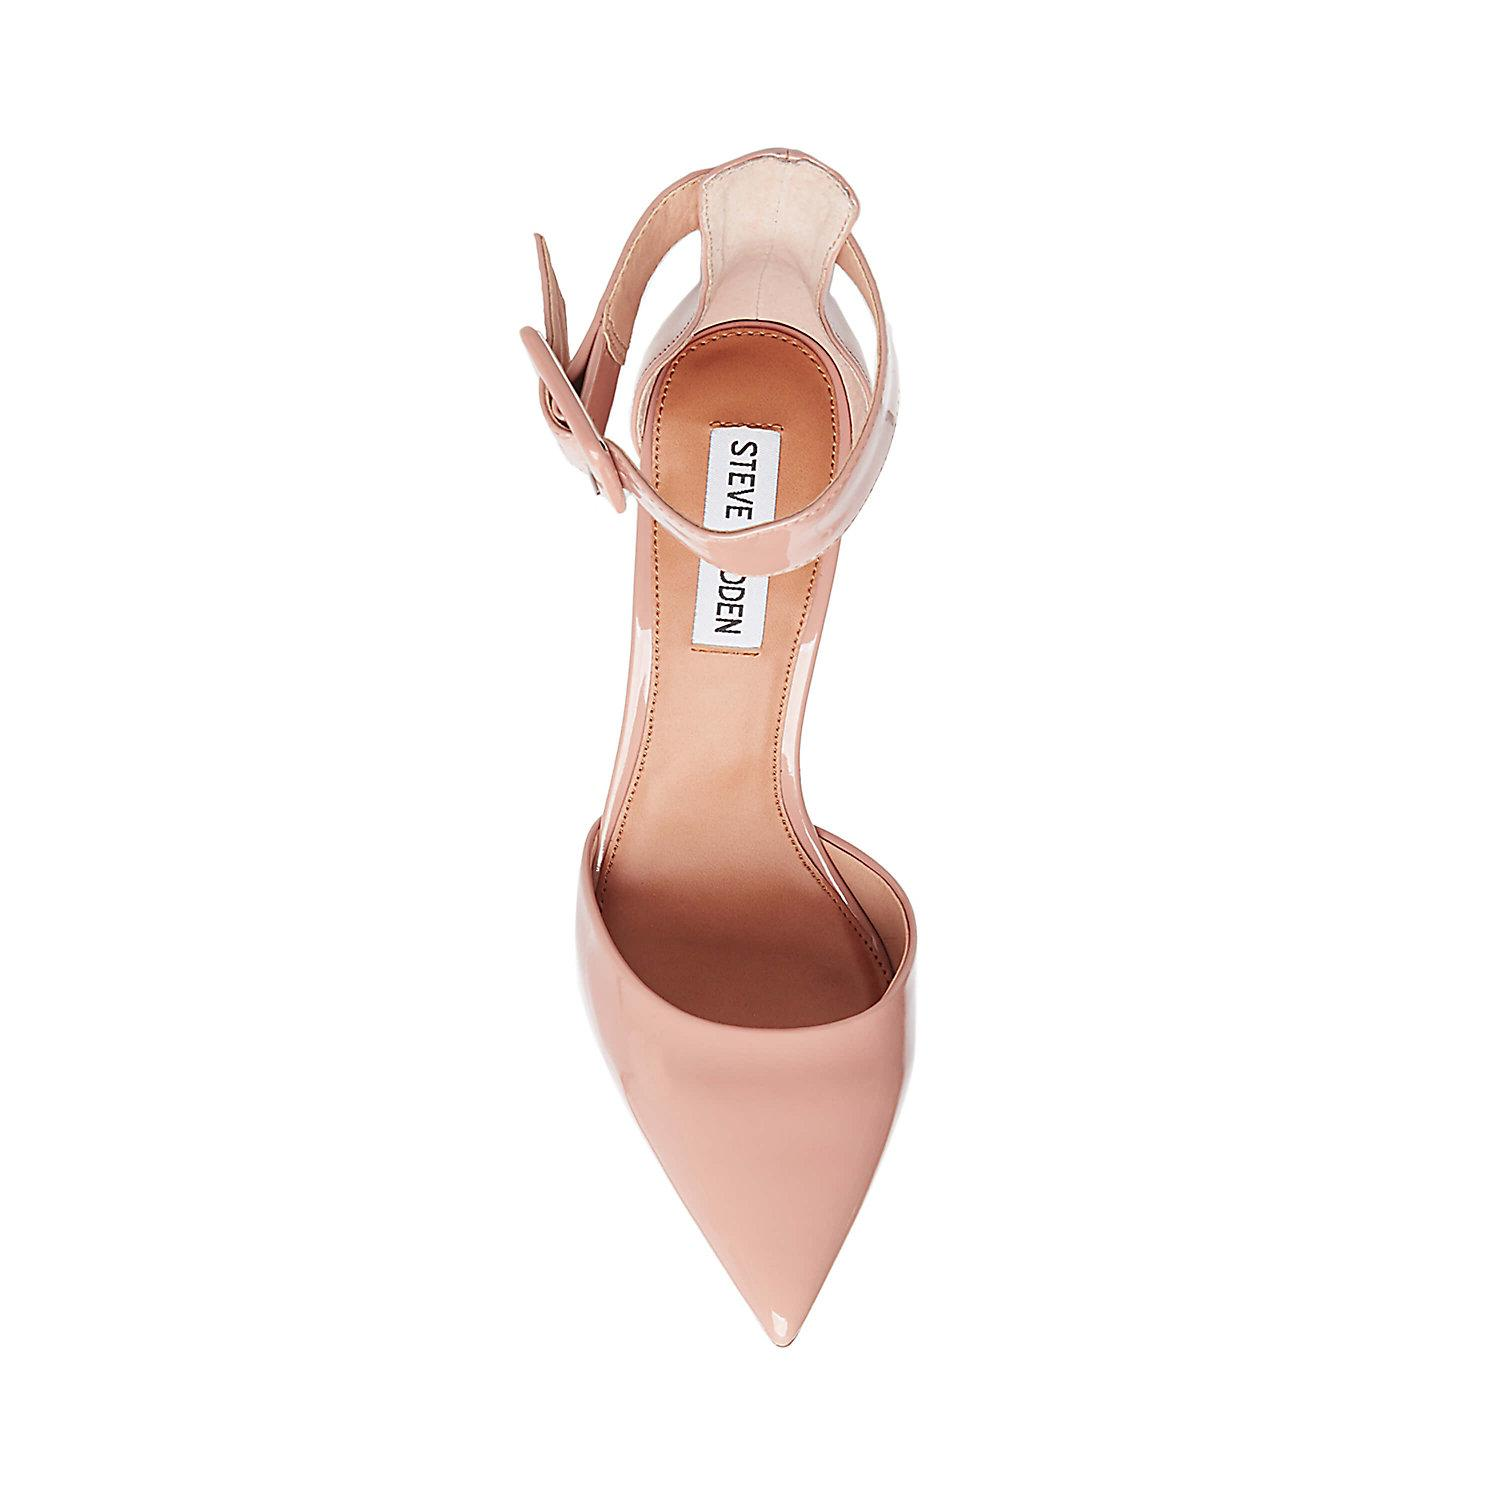 7f06f3adc77 Lyst - Steve Madden Desire in Pink